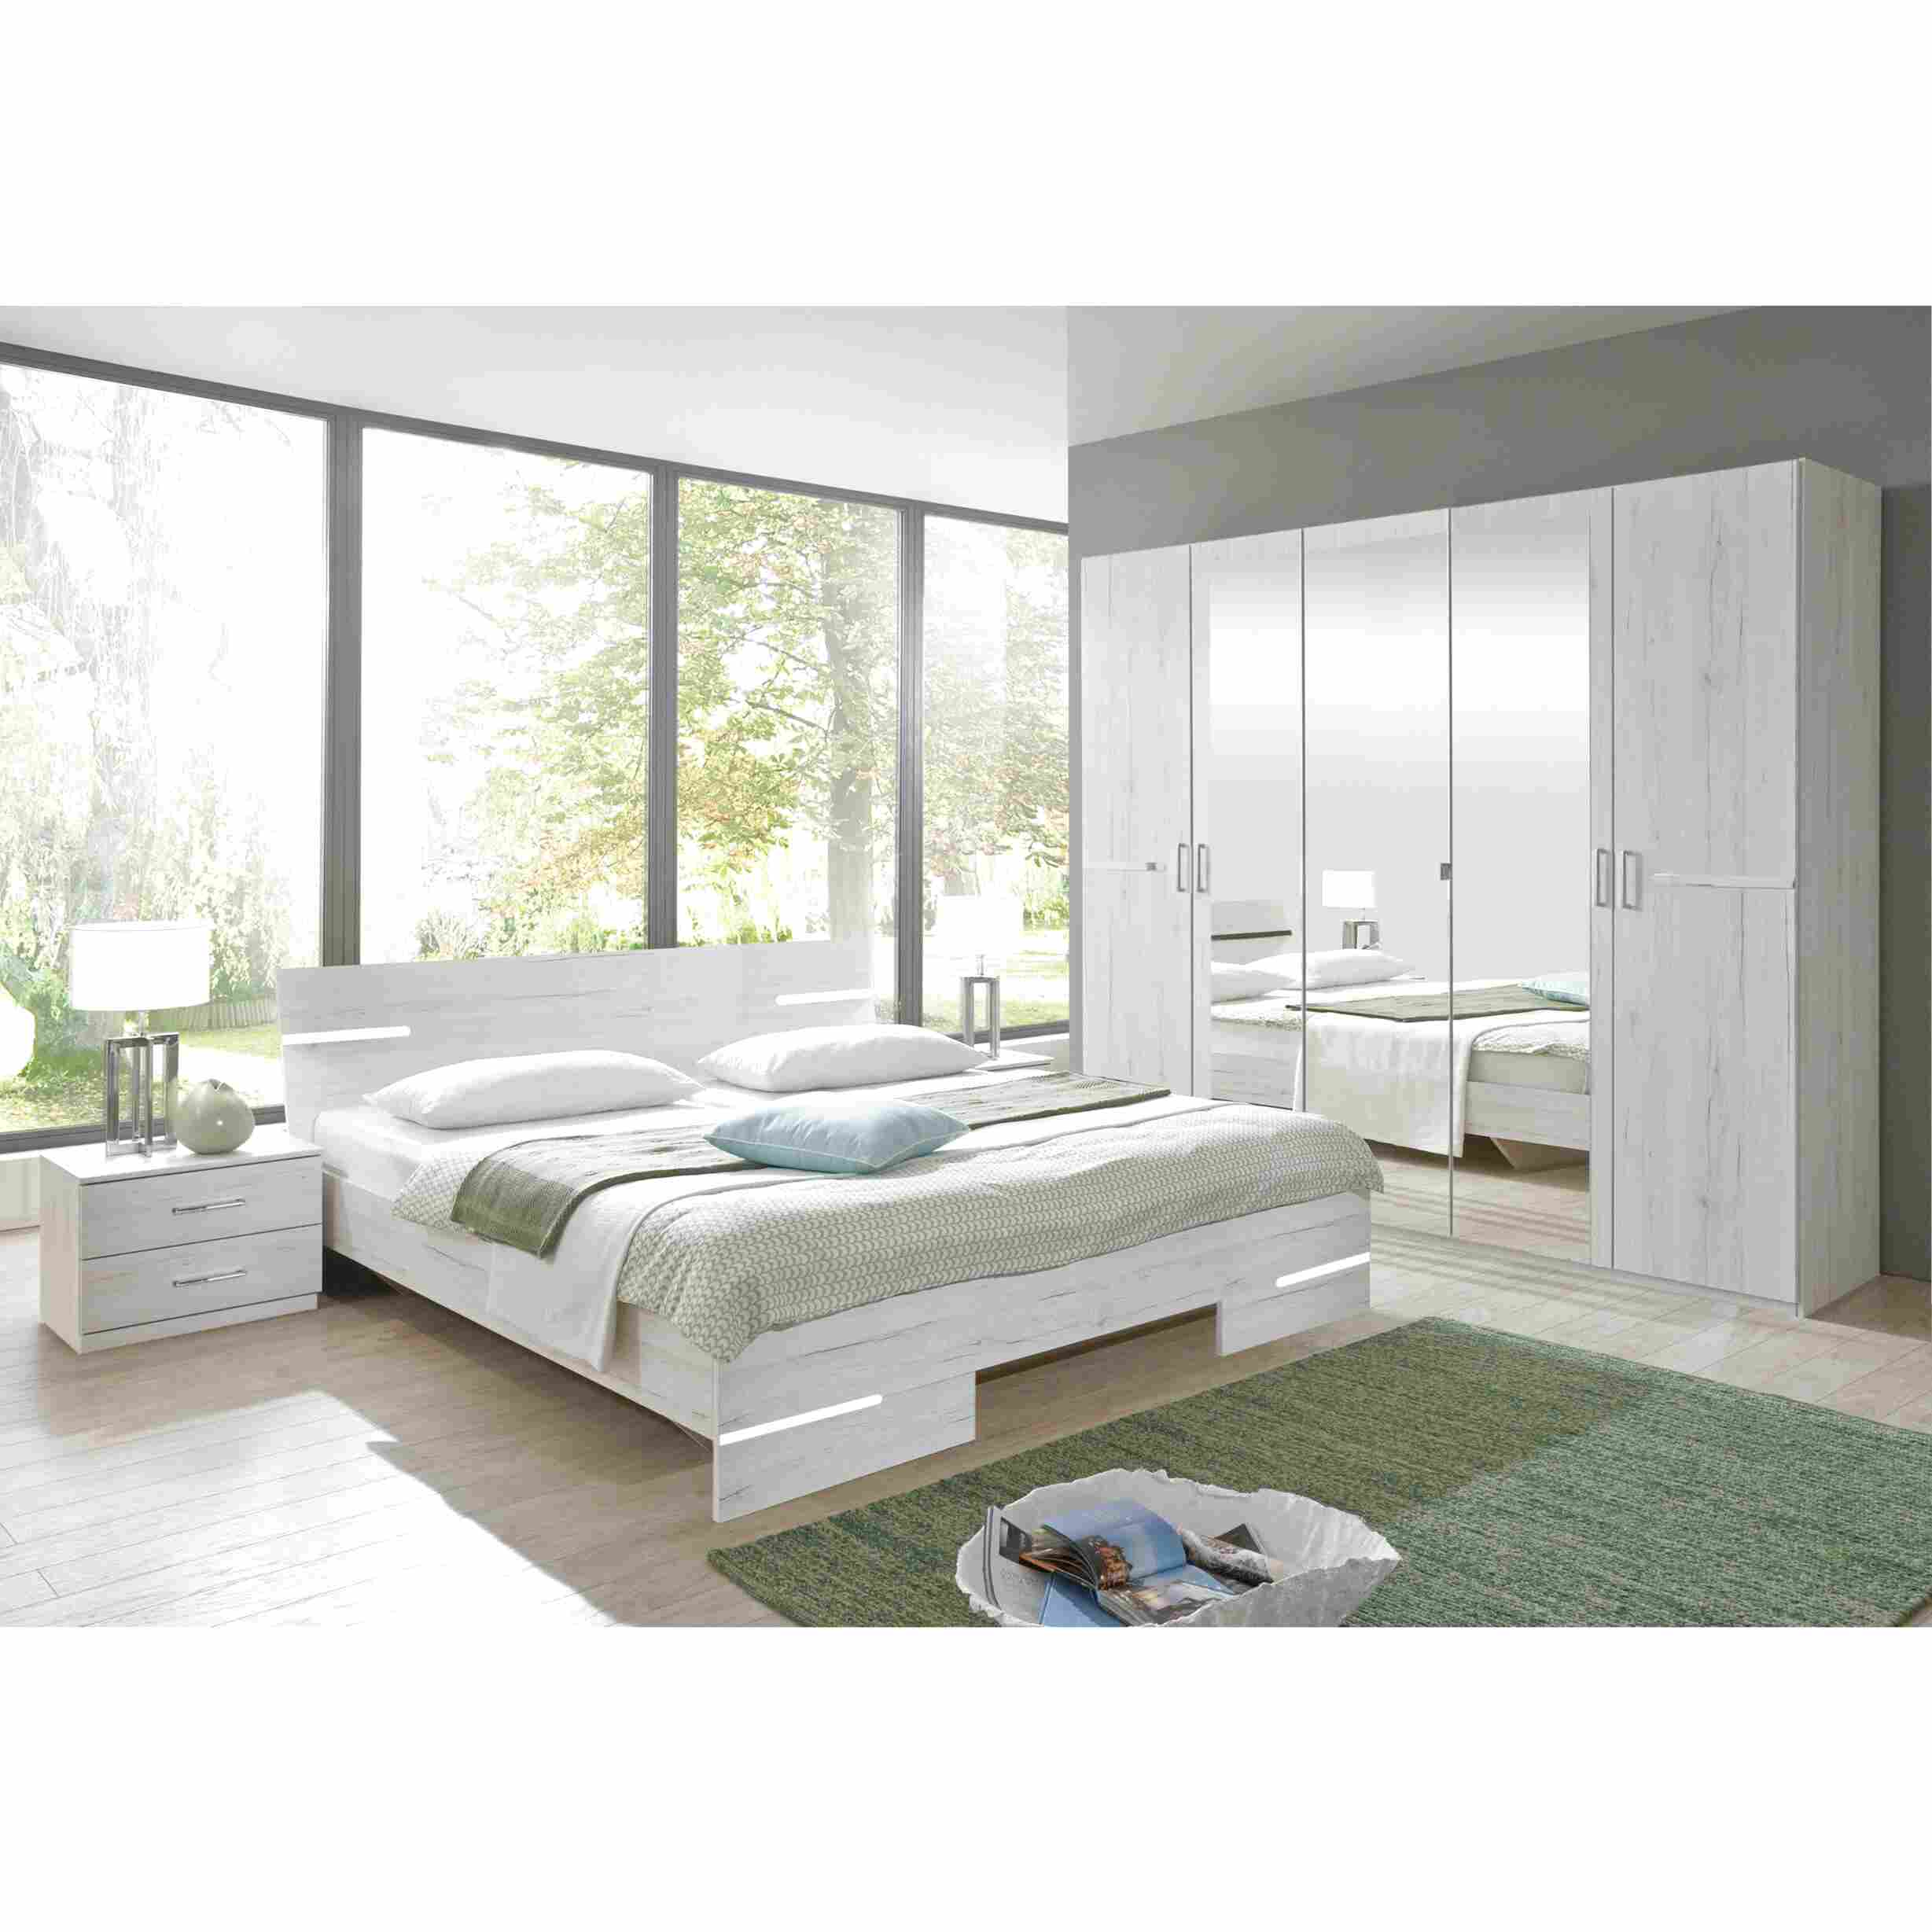 Qmax German Bedroom For Sale In Uk View 53 Bargains